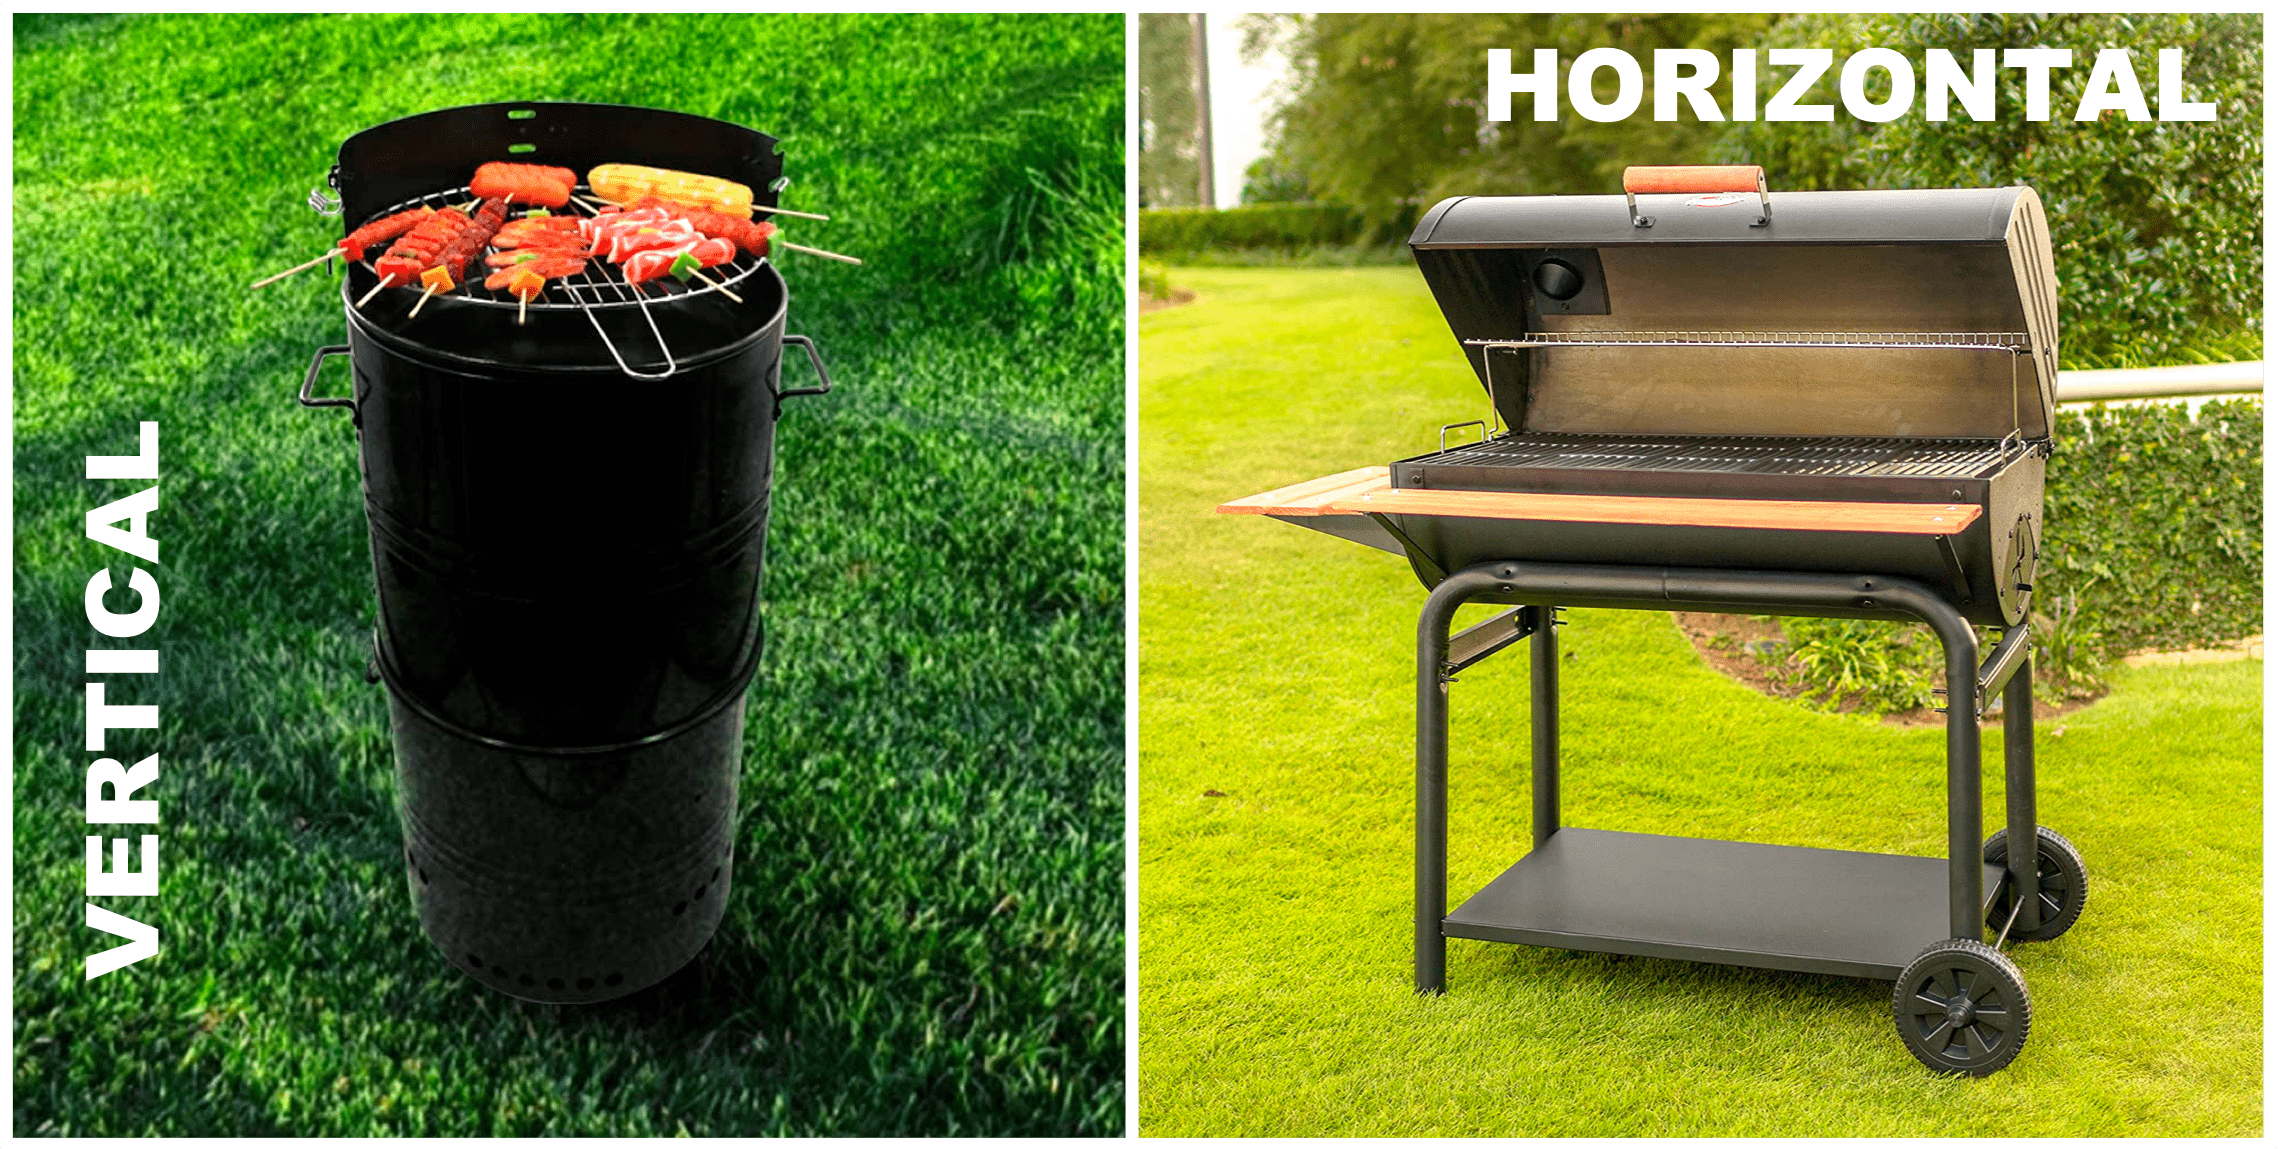 Vertical and Horizontal Oil Drum | BBQanswers